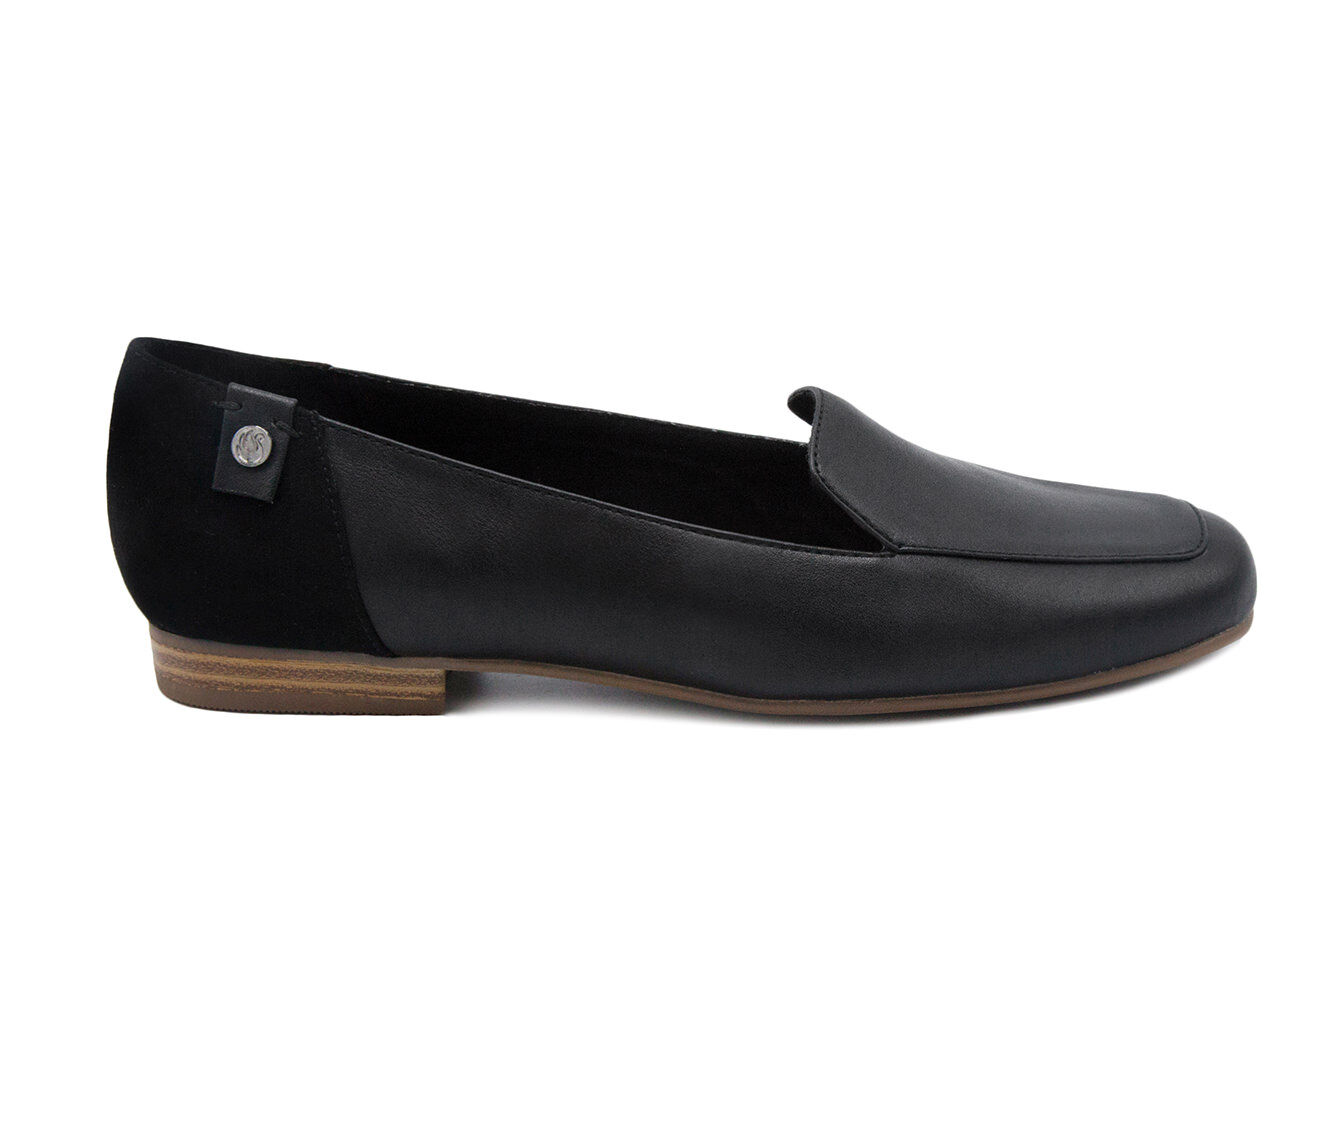 new arrival Women's Gloria Vanderbilt Marjorie Shoes Black